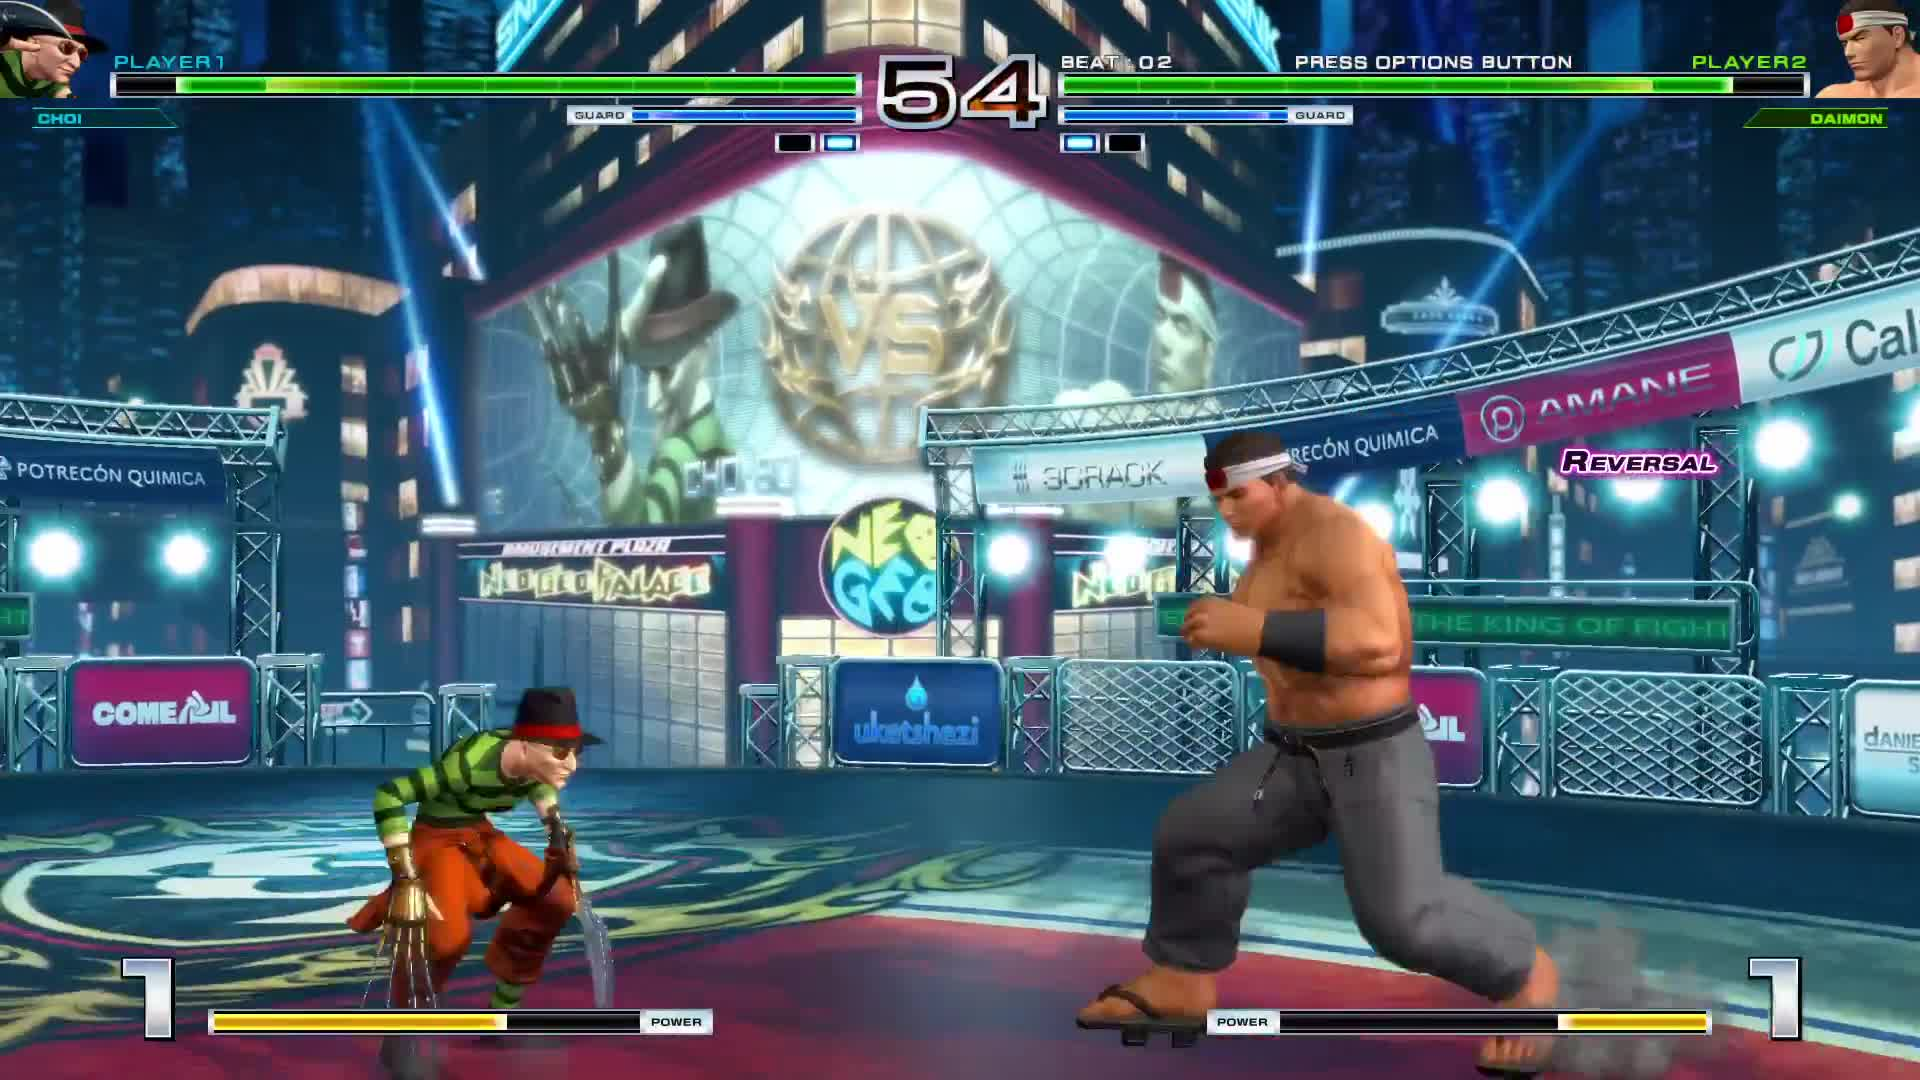 #PS4share, BlueXephos, ChaoticMonki, Jacksepticeye, OfficialNerdCubed, PlayStation 4, SeaNanners, Sony Interactive Entertainment, horror, movie, [KOF XIV] Choi Bounge Story 22 VS GORO DAIMON [PS4 Pro] GIFs